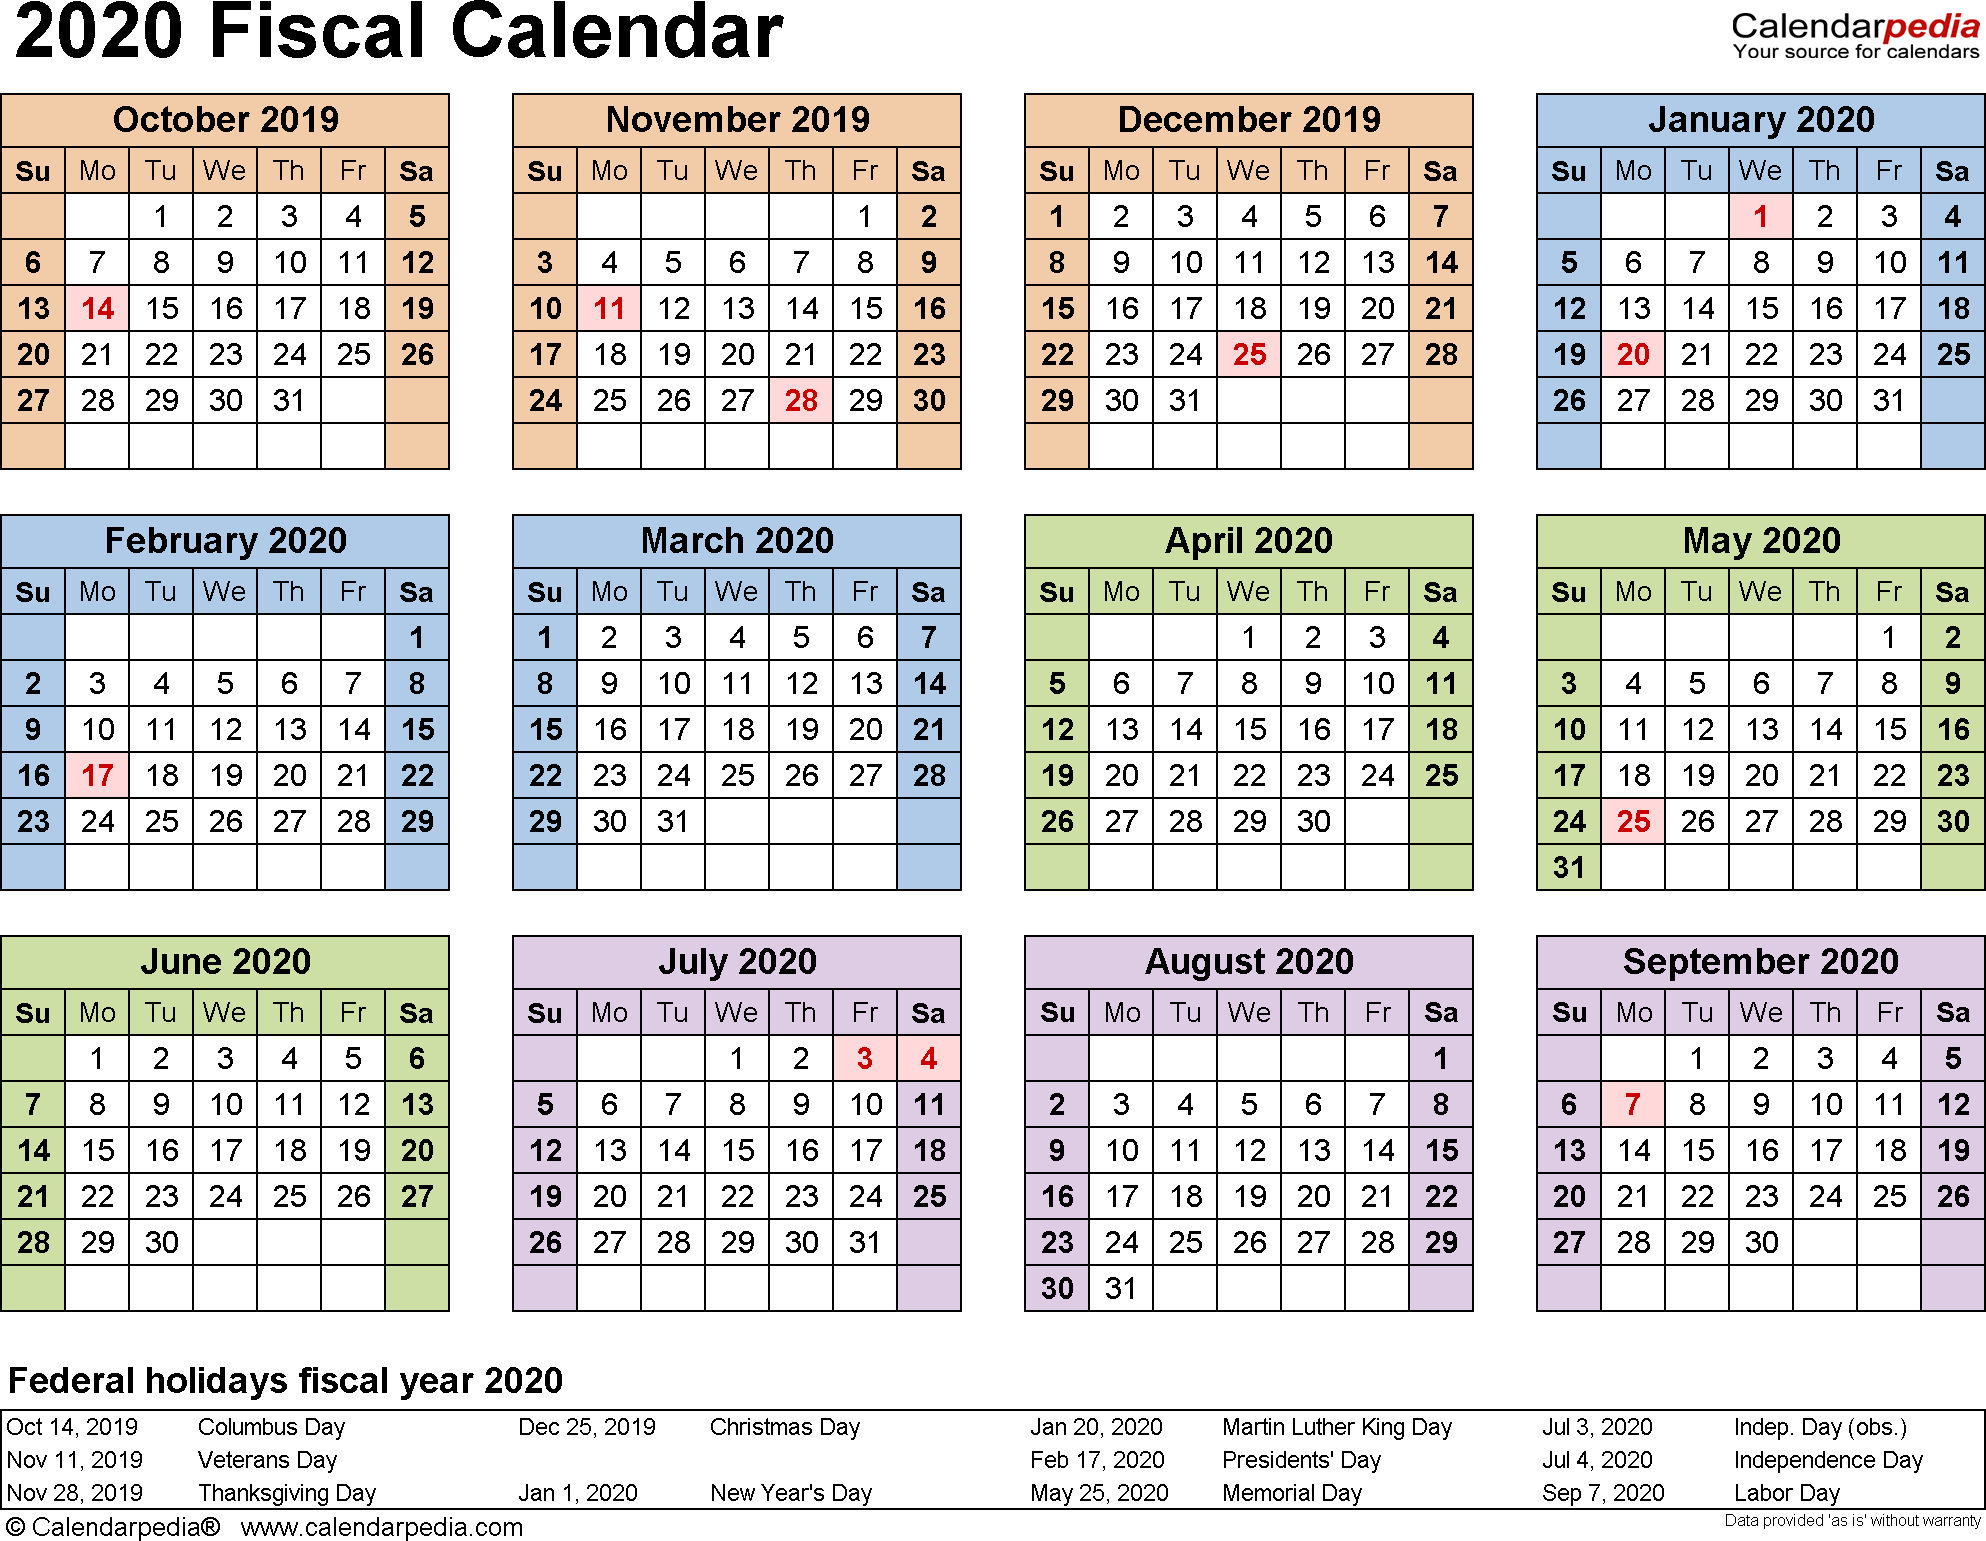 Fiscal Calendars 2020 - Free Printable Pdf Templates with Payroll Calendar 2020 Every Two Weeks